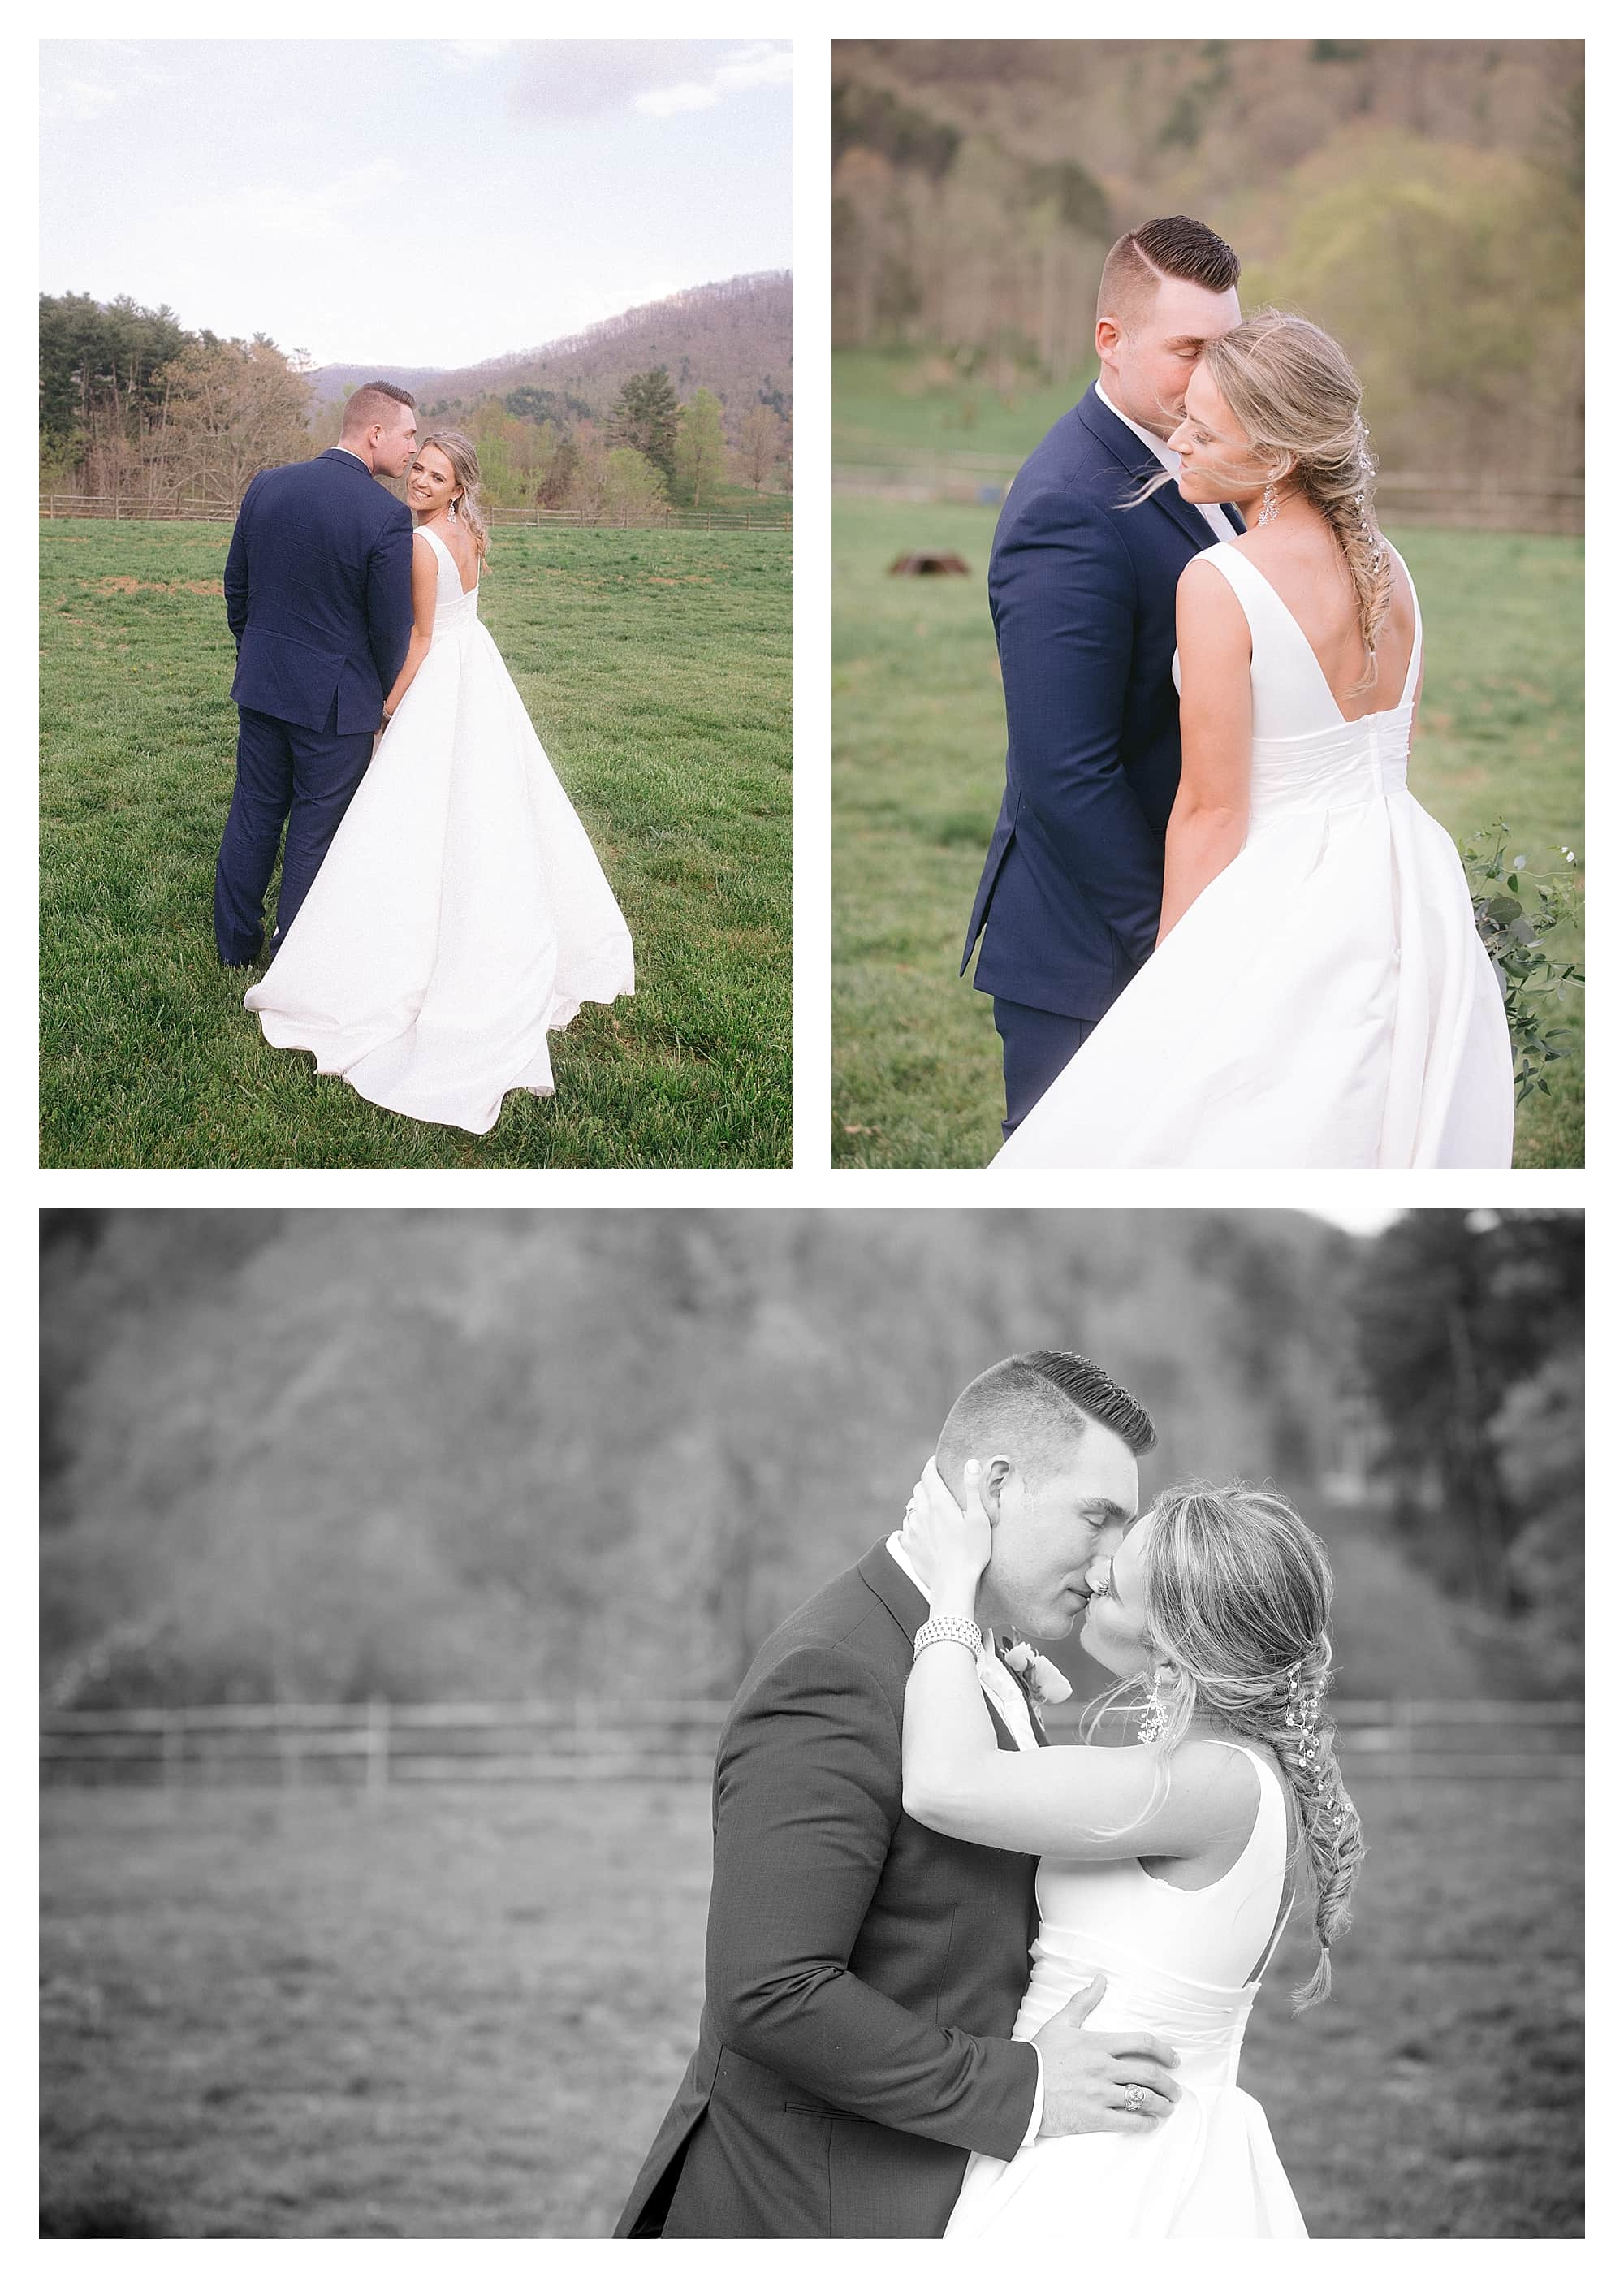 Bride and groom kissing in grassy field